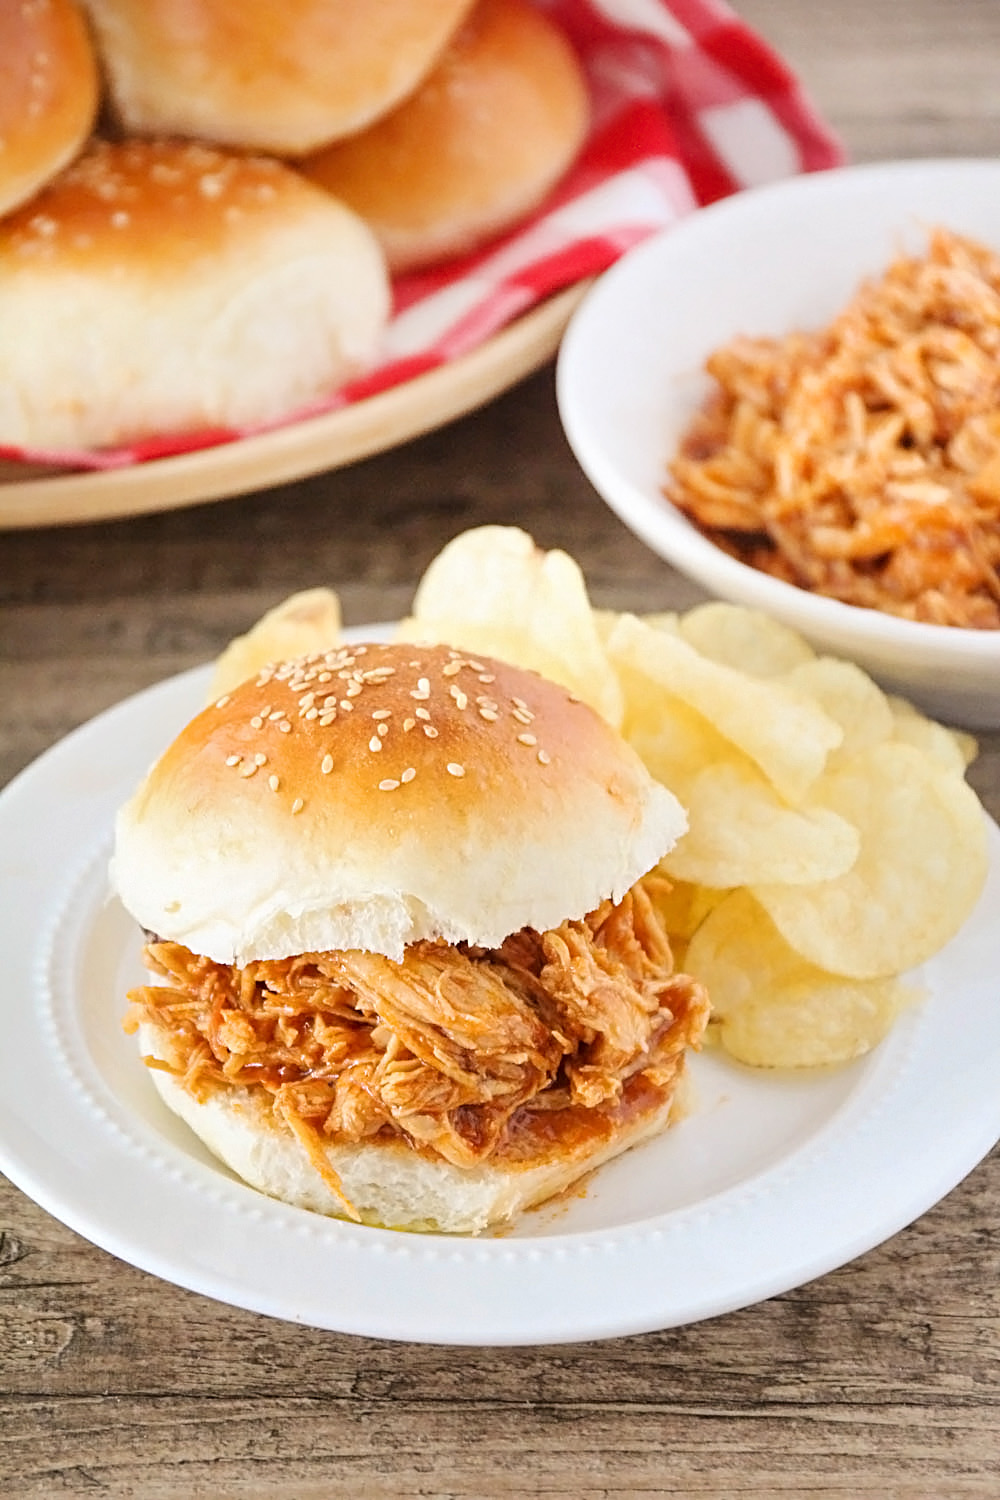 These instant pot barbecue chicken sandwiches are so juicy and flavorful, and so easy to make!